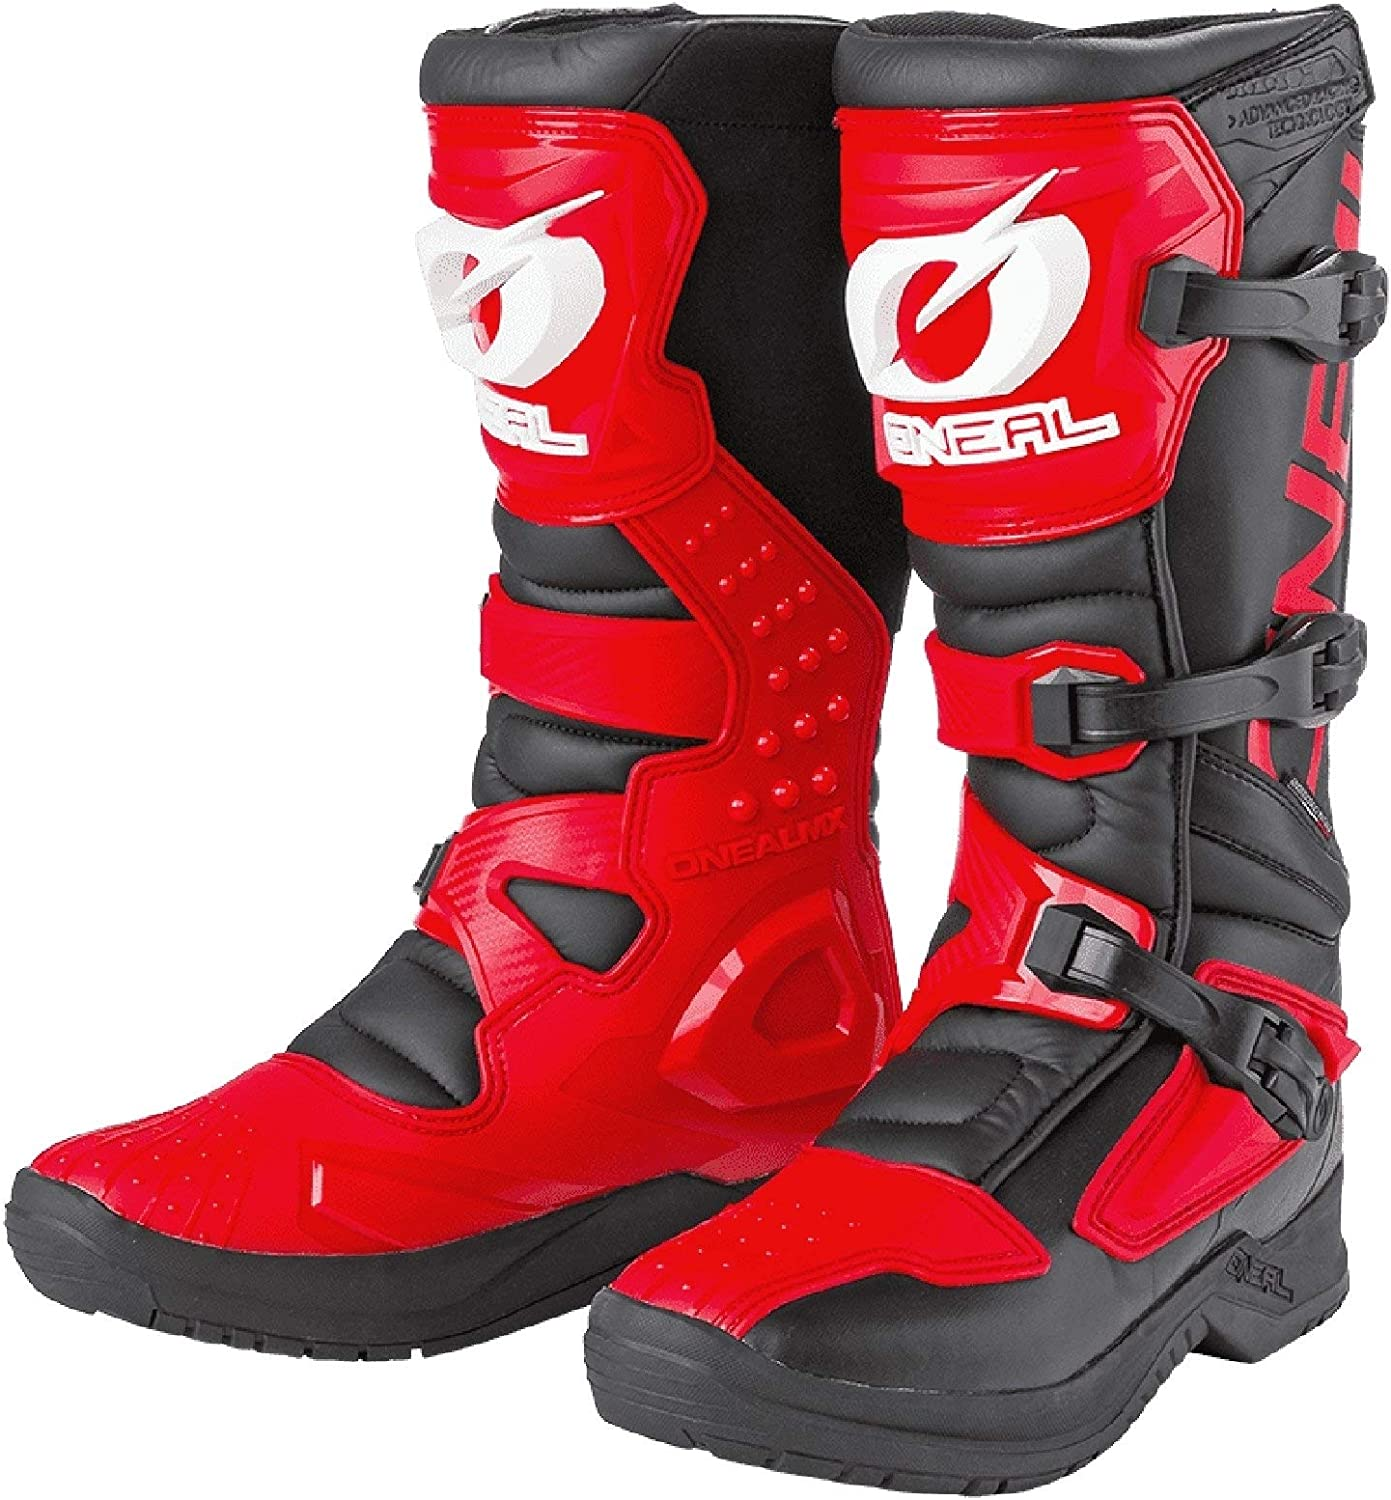 ONeal Unisex Motocross Stiefel RSX Boot 39 Rot 0334-1